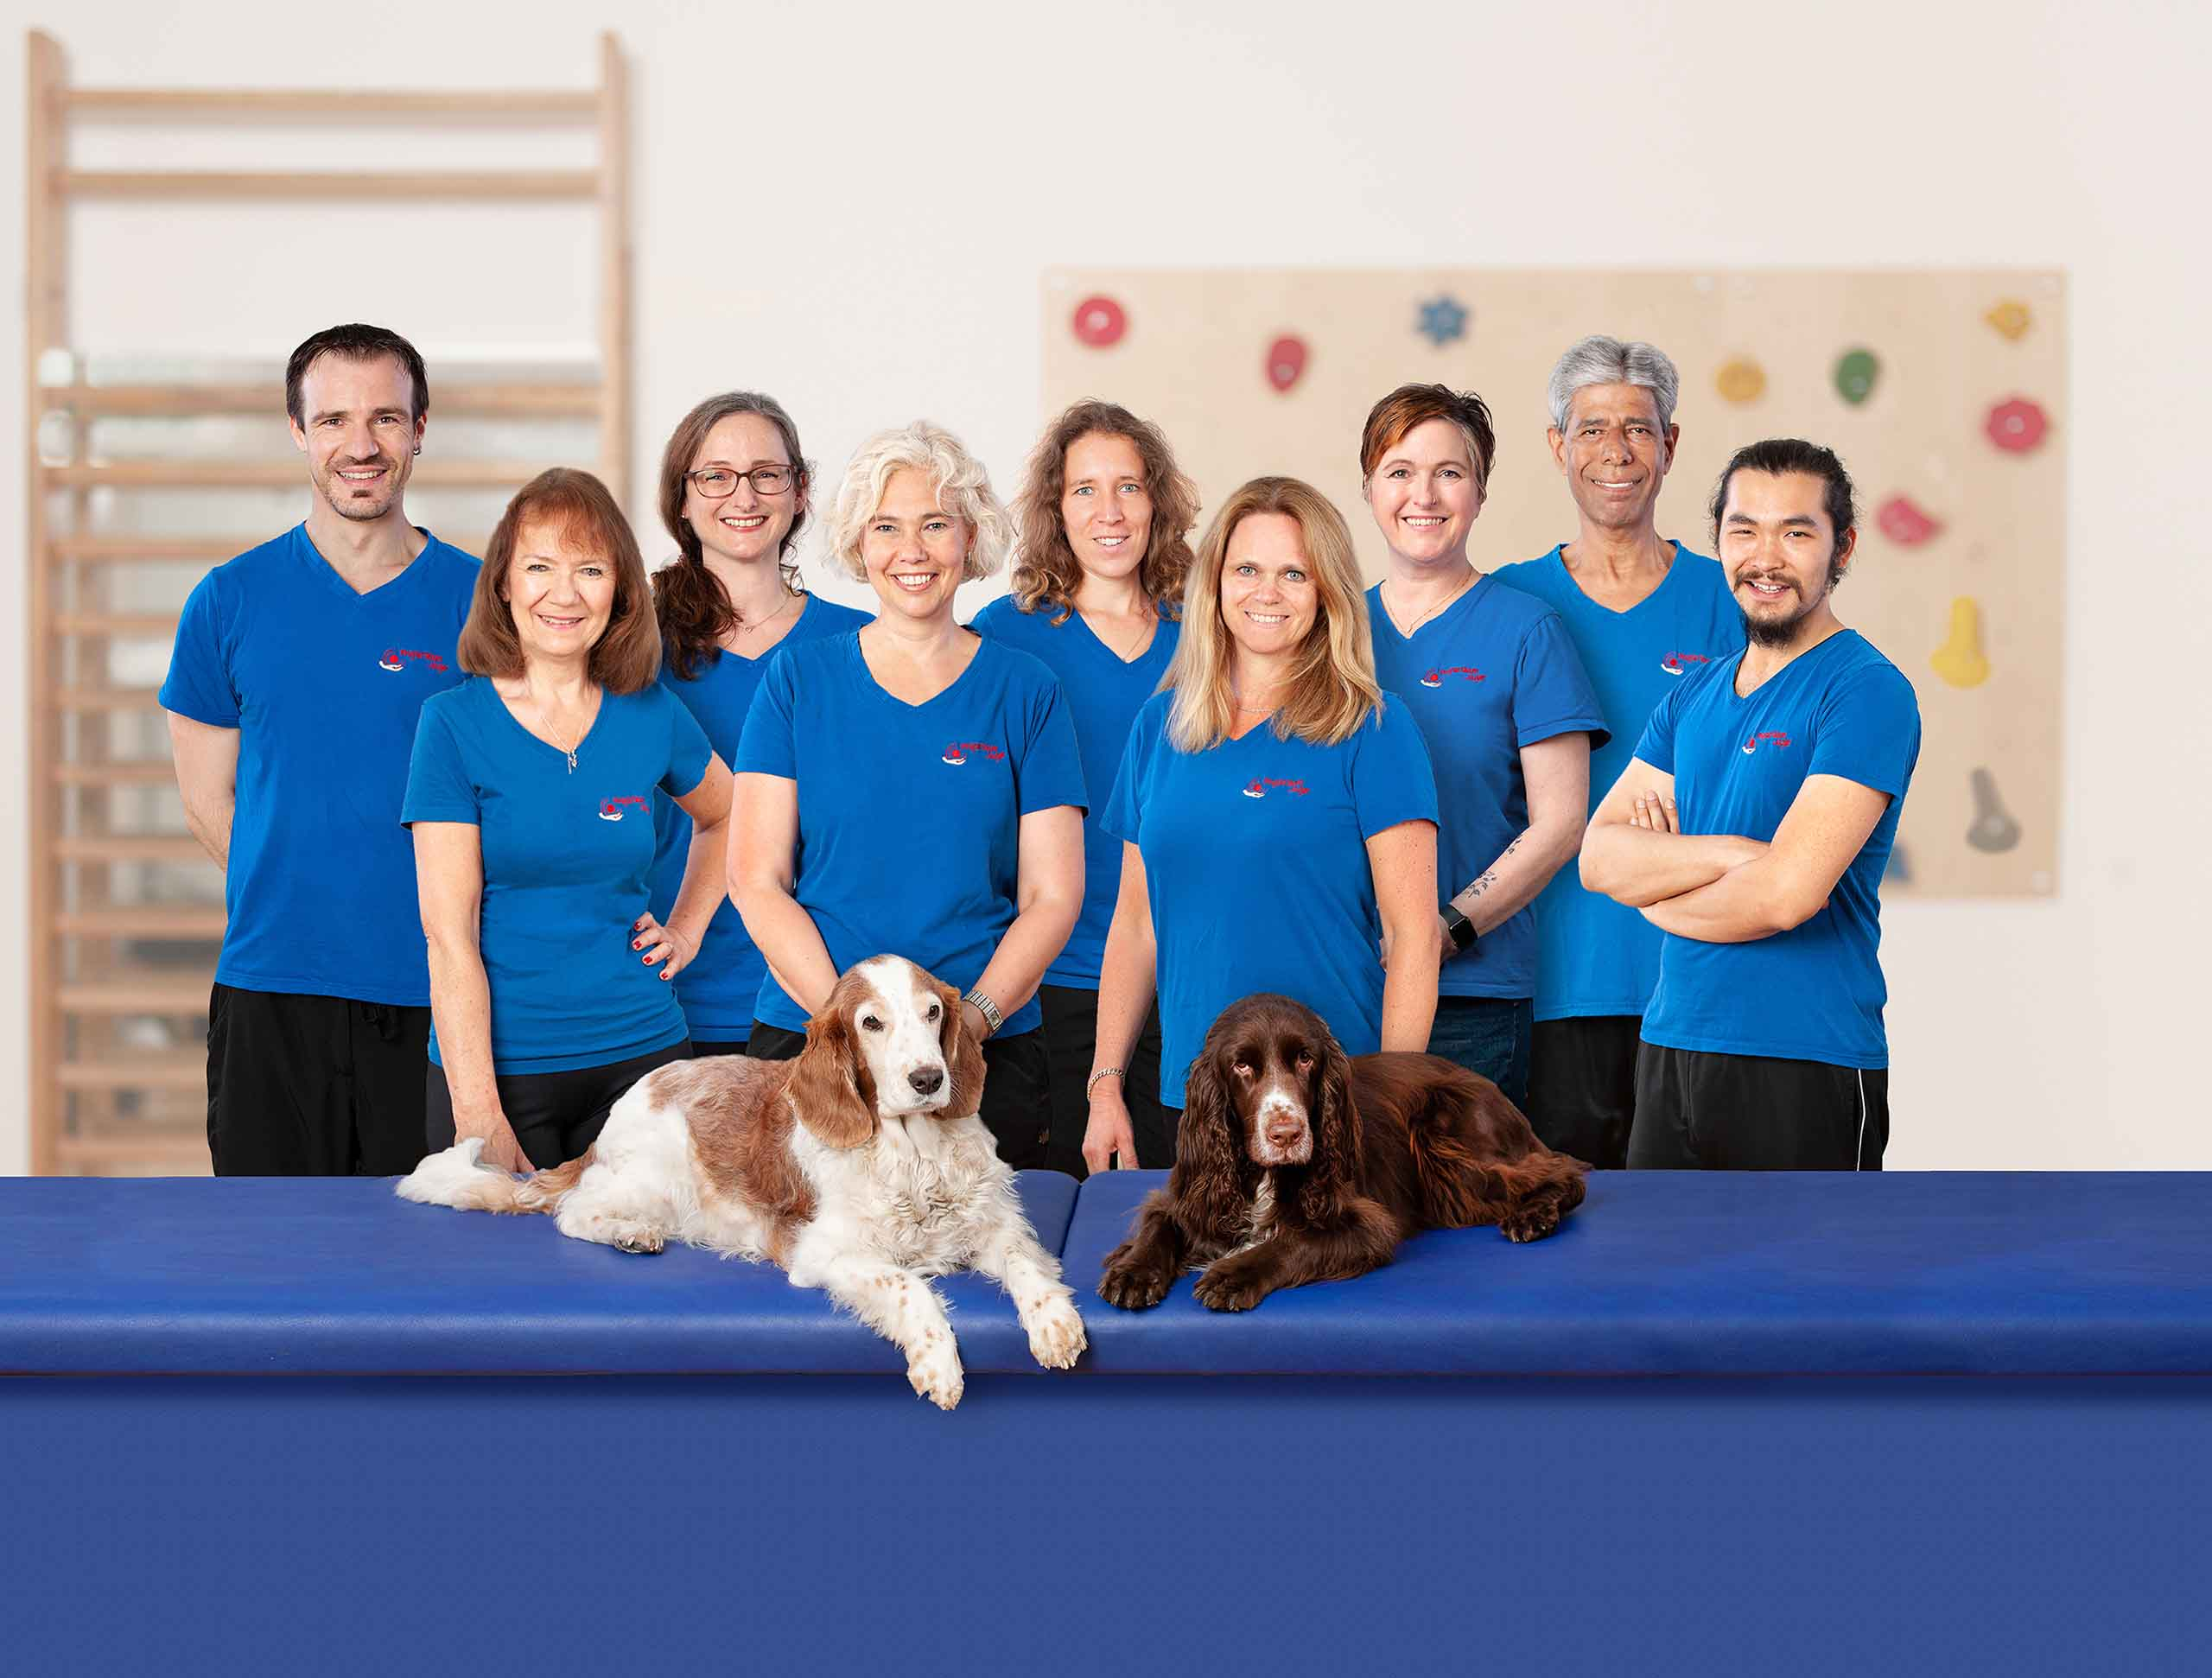 Team Physiotherapie PhysioTeam Jager in Berlin